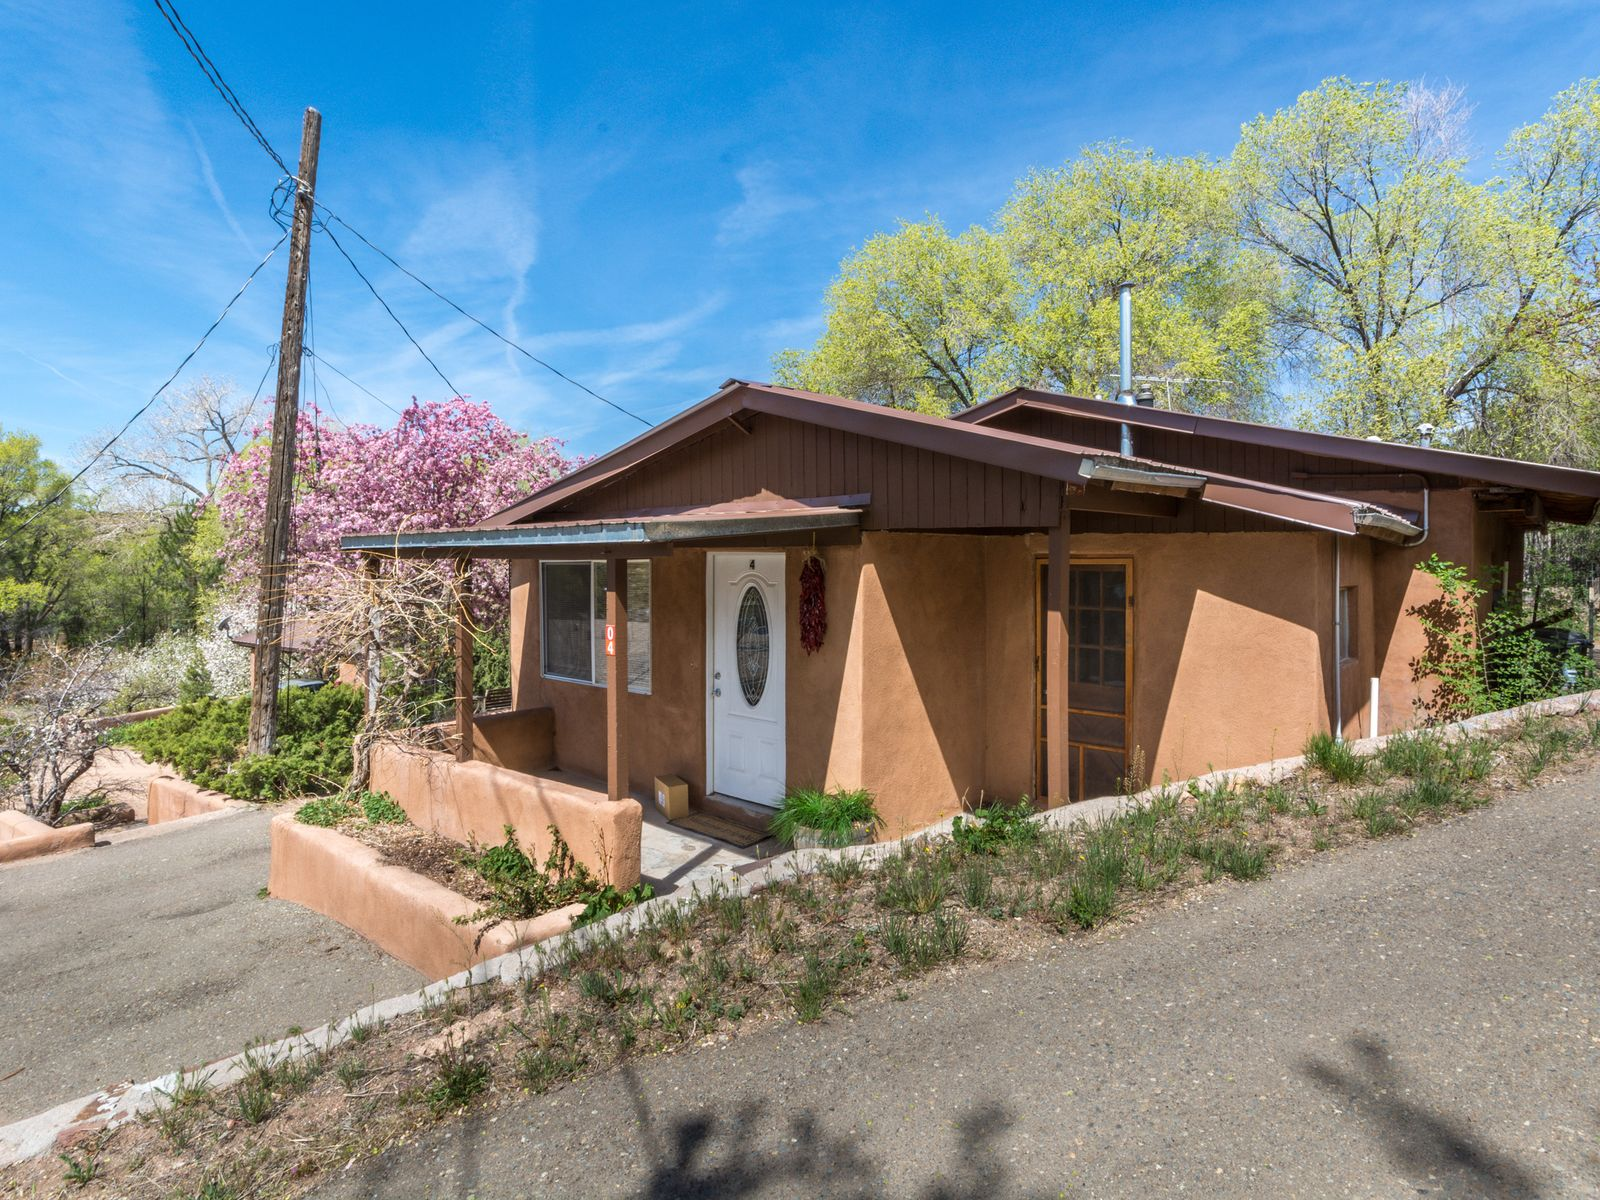 2 Rosanna, Tesuque NM Single Family Home - Santa Fe Real Estate